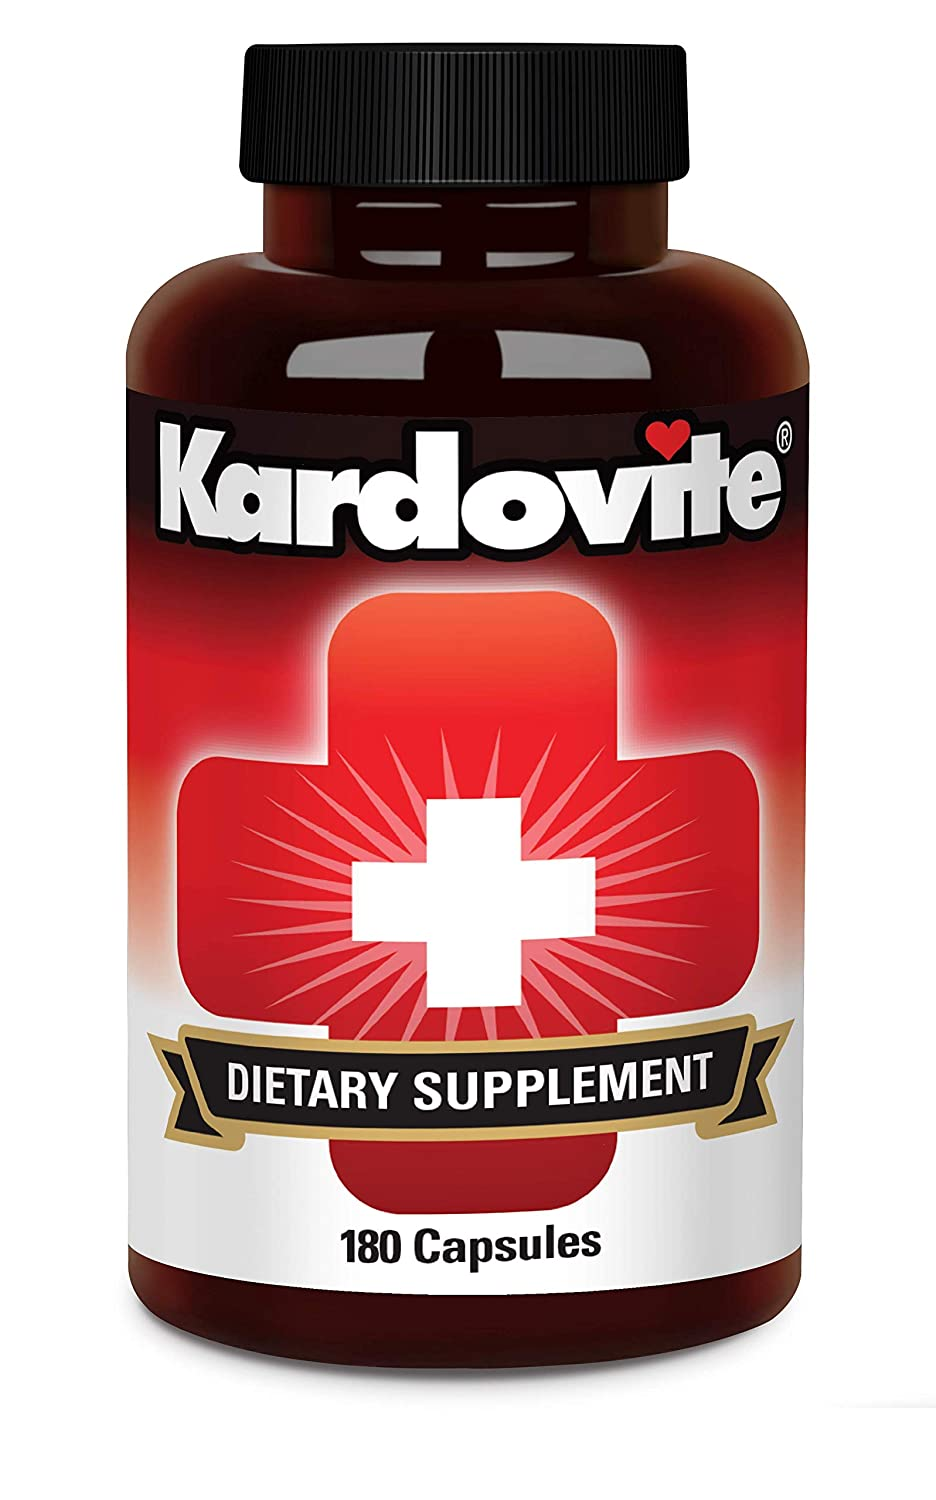 Supplement to Support Circulation Healthy Cardiovascular Function. Supports Already Normal Blood Pressure Strong Blood Vessels. Original Kardovite Capsules By Pharmacist Sam Ibrahim. 60 Day Supply